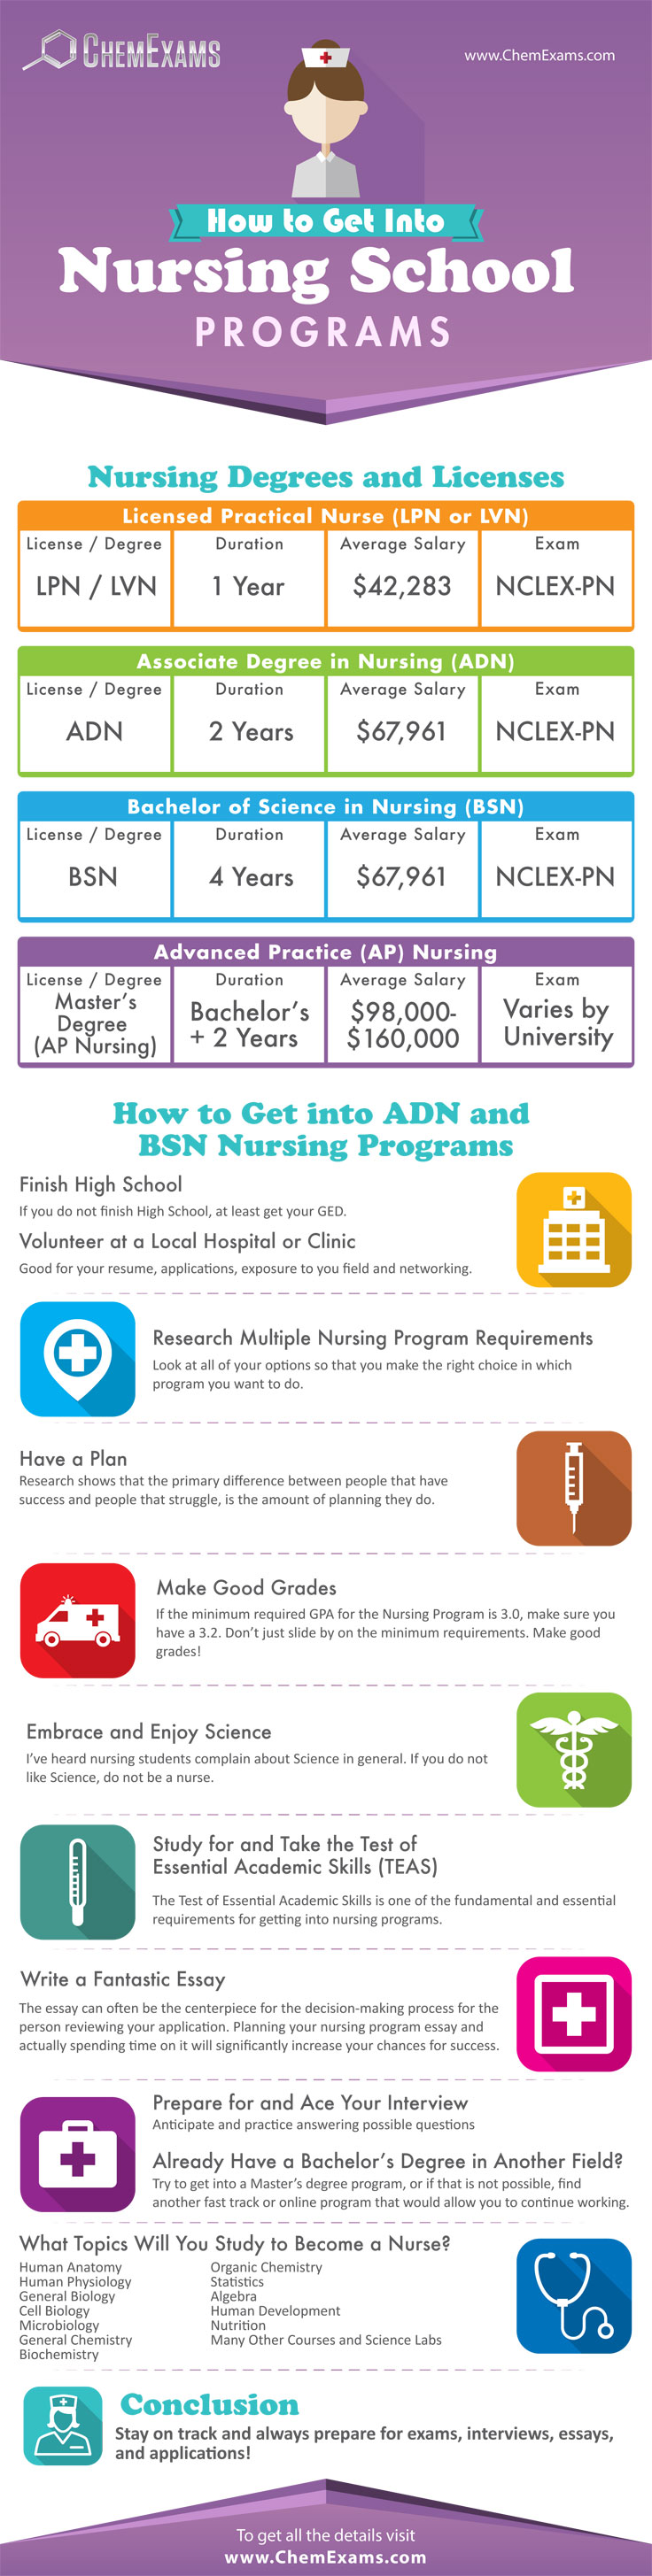 how to get into nursing school programs infographic  how to get into nursing school programs infographic